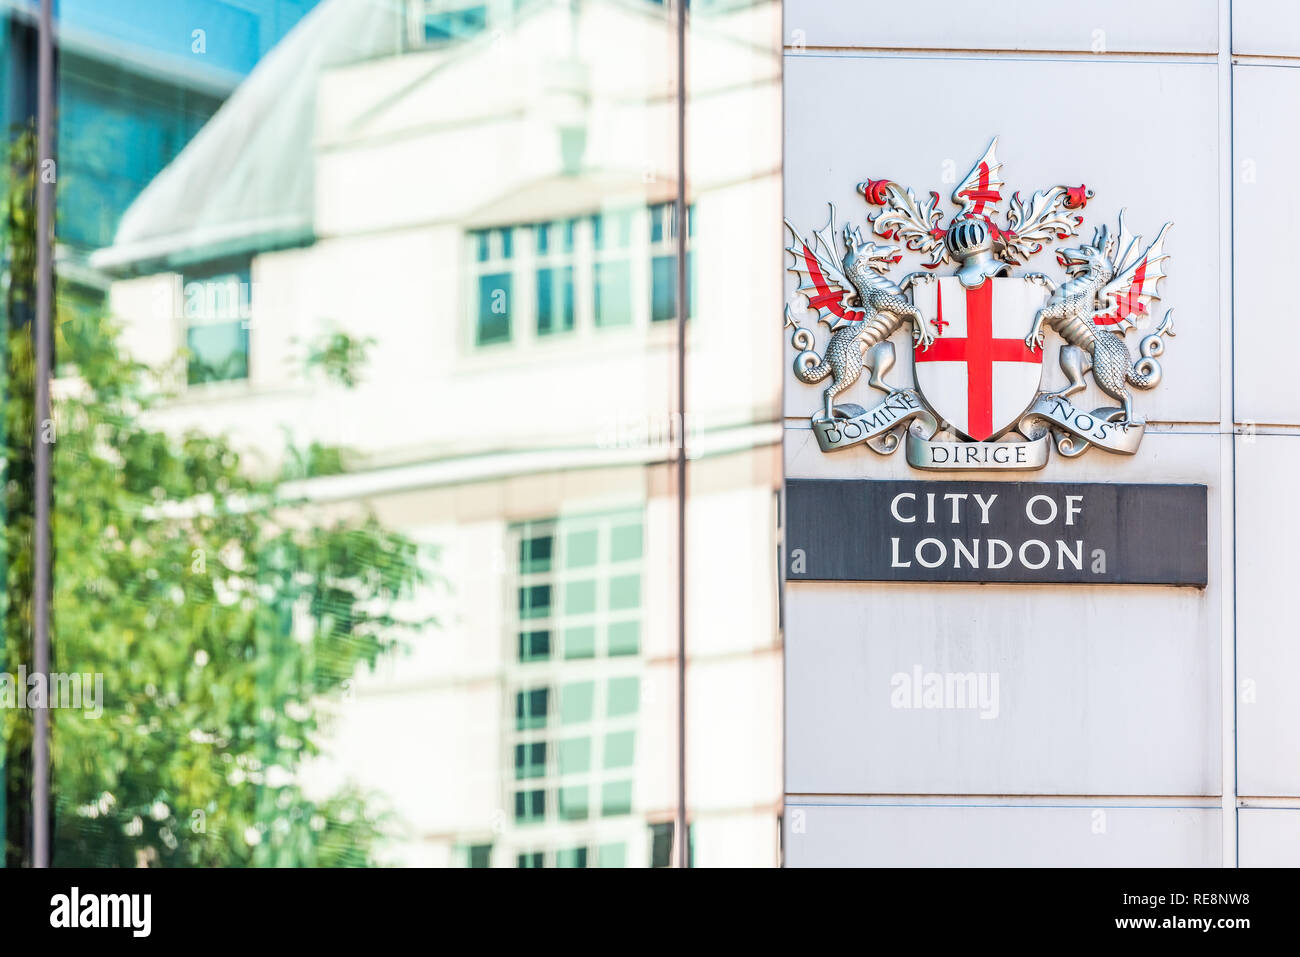 City of London, UK - June 22, 2018: Closeup of modern architecture glass window of building reflection and sign in central business downtown and nobod - Stock Image